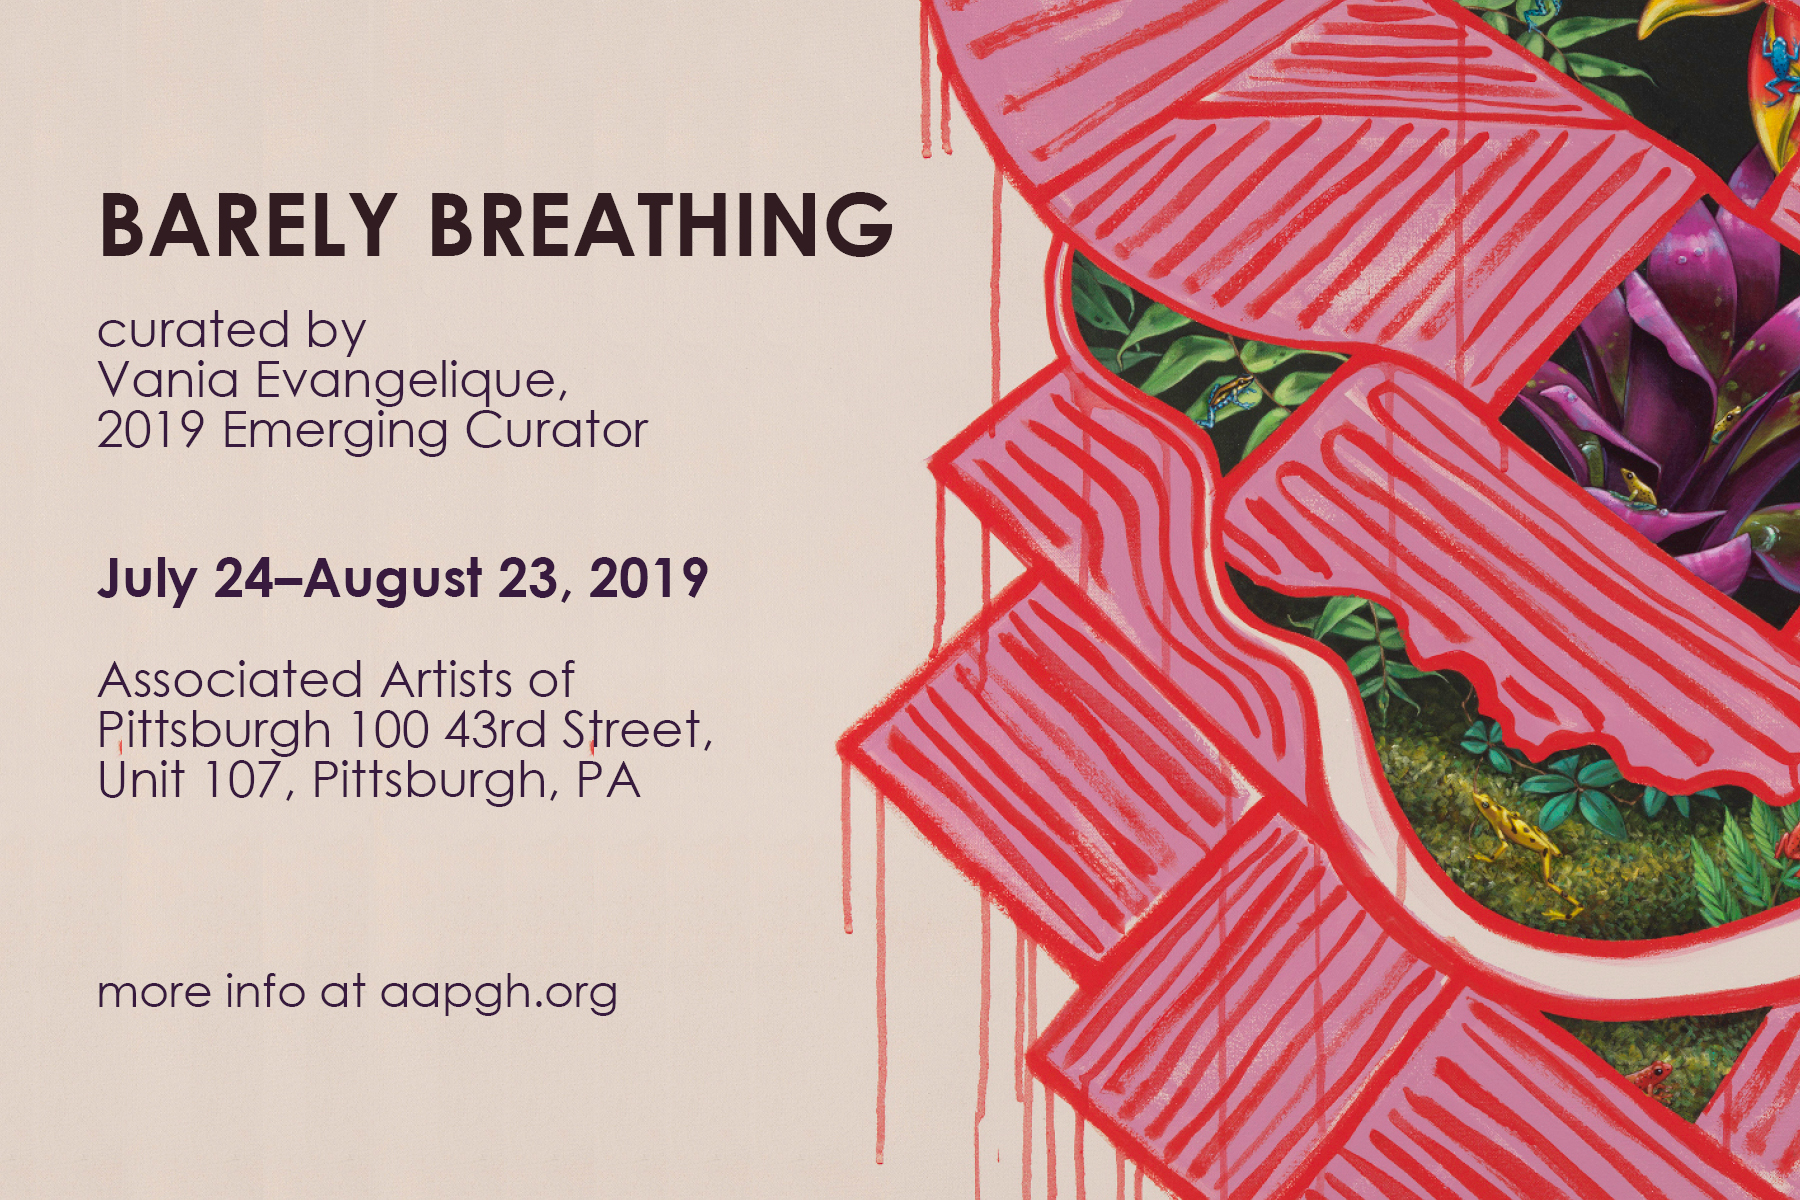 Barely Breathing    July 24-August 23, 2019  Associated Artists of Pittsburgh 100 43rd St, Unit 107   AAP presents  Barely Breathing , the 2019 Emerging Curator Exhibition. Curated by Vania Evangelique, the exhibition explores the relationship between individuals and nature and how that relationship is represented in art. The exhibition features the work of  Ashley Cecil ,  J Houston ,  Kristen Letts Kovak ,  Corrine Jasmin ,  Natiq Jalil ,  Stephanie Martin , and  Elizabeth Rose .